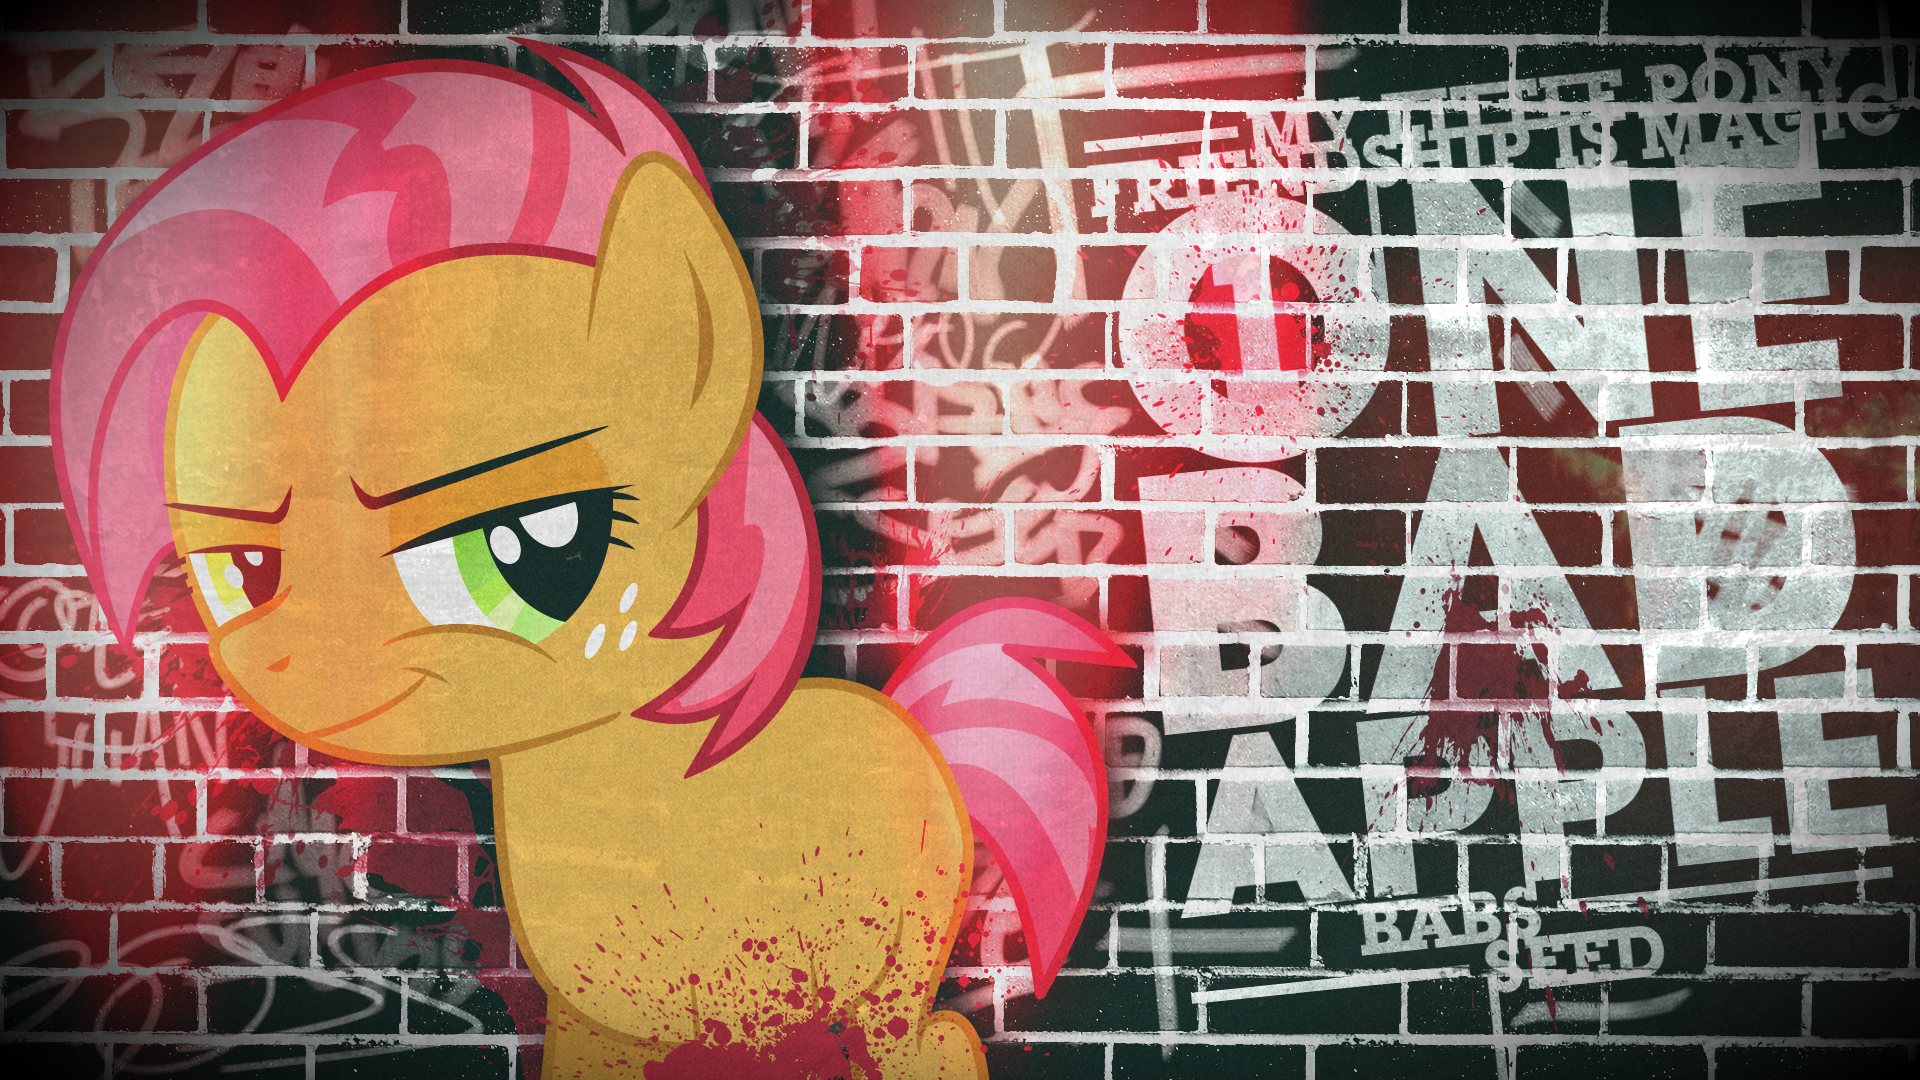 Babs Seed - One. Bad. Apple. (Wallpaper)